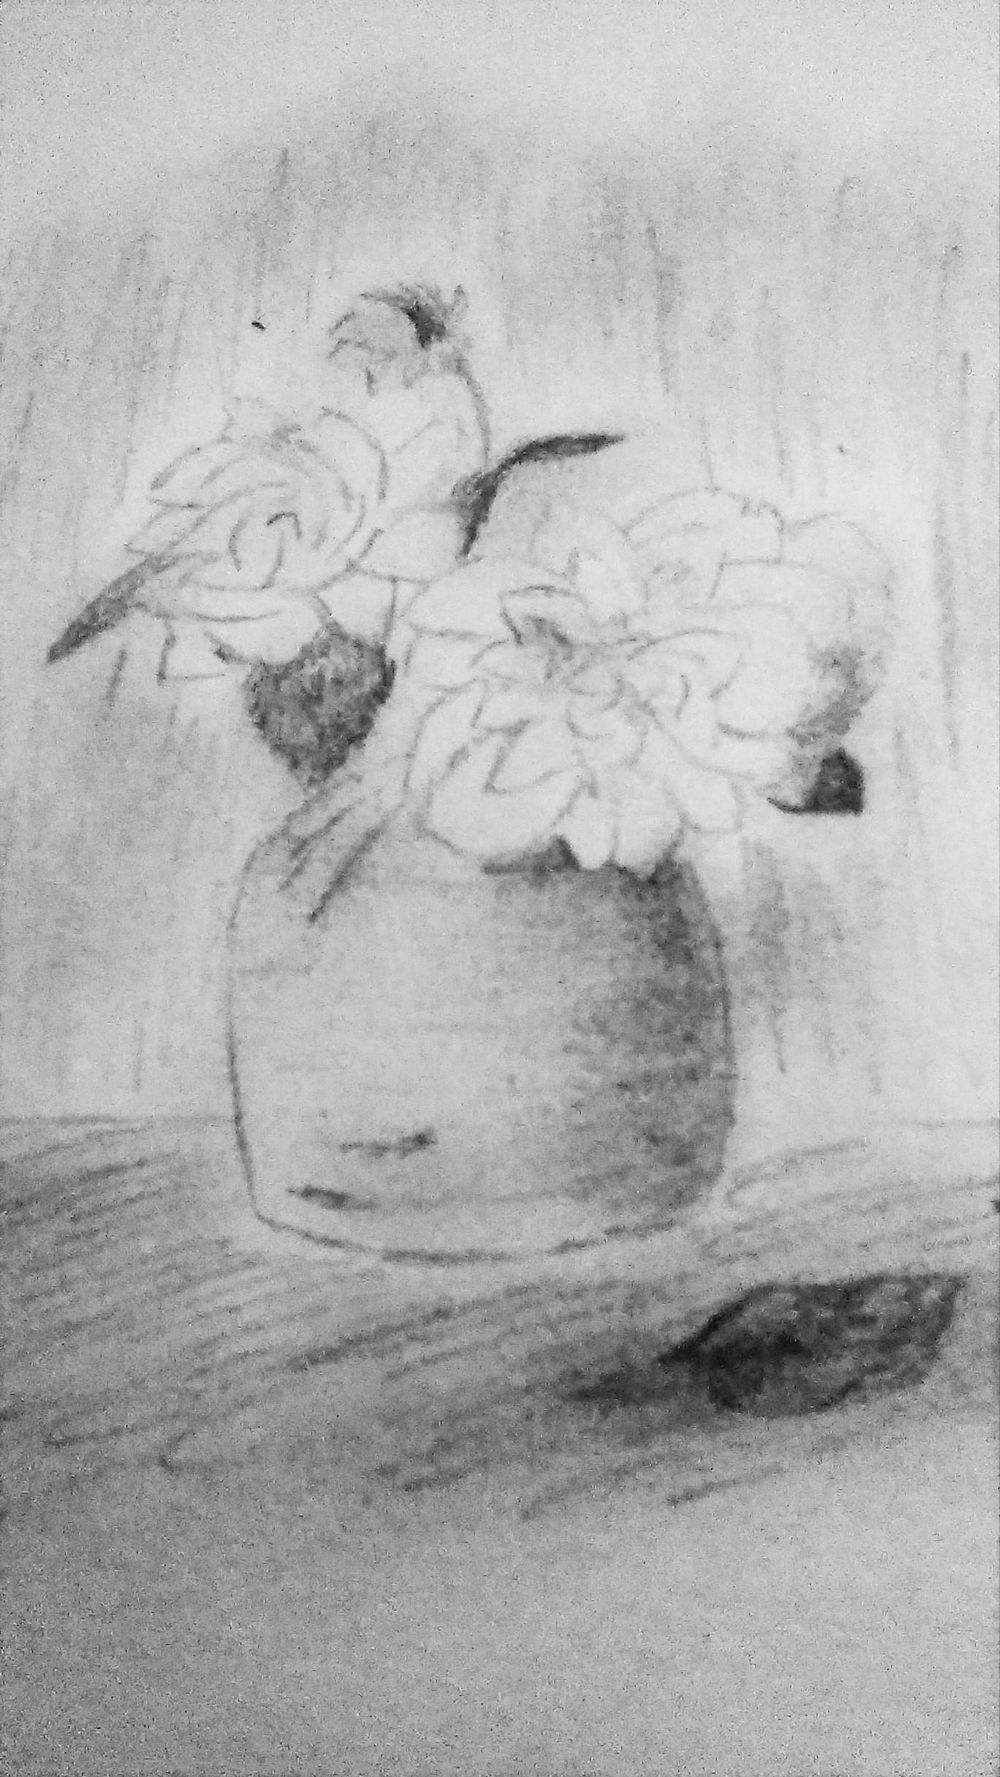 flowers in pot no1 - image 1 - student project